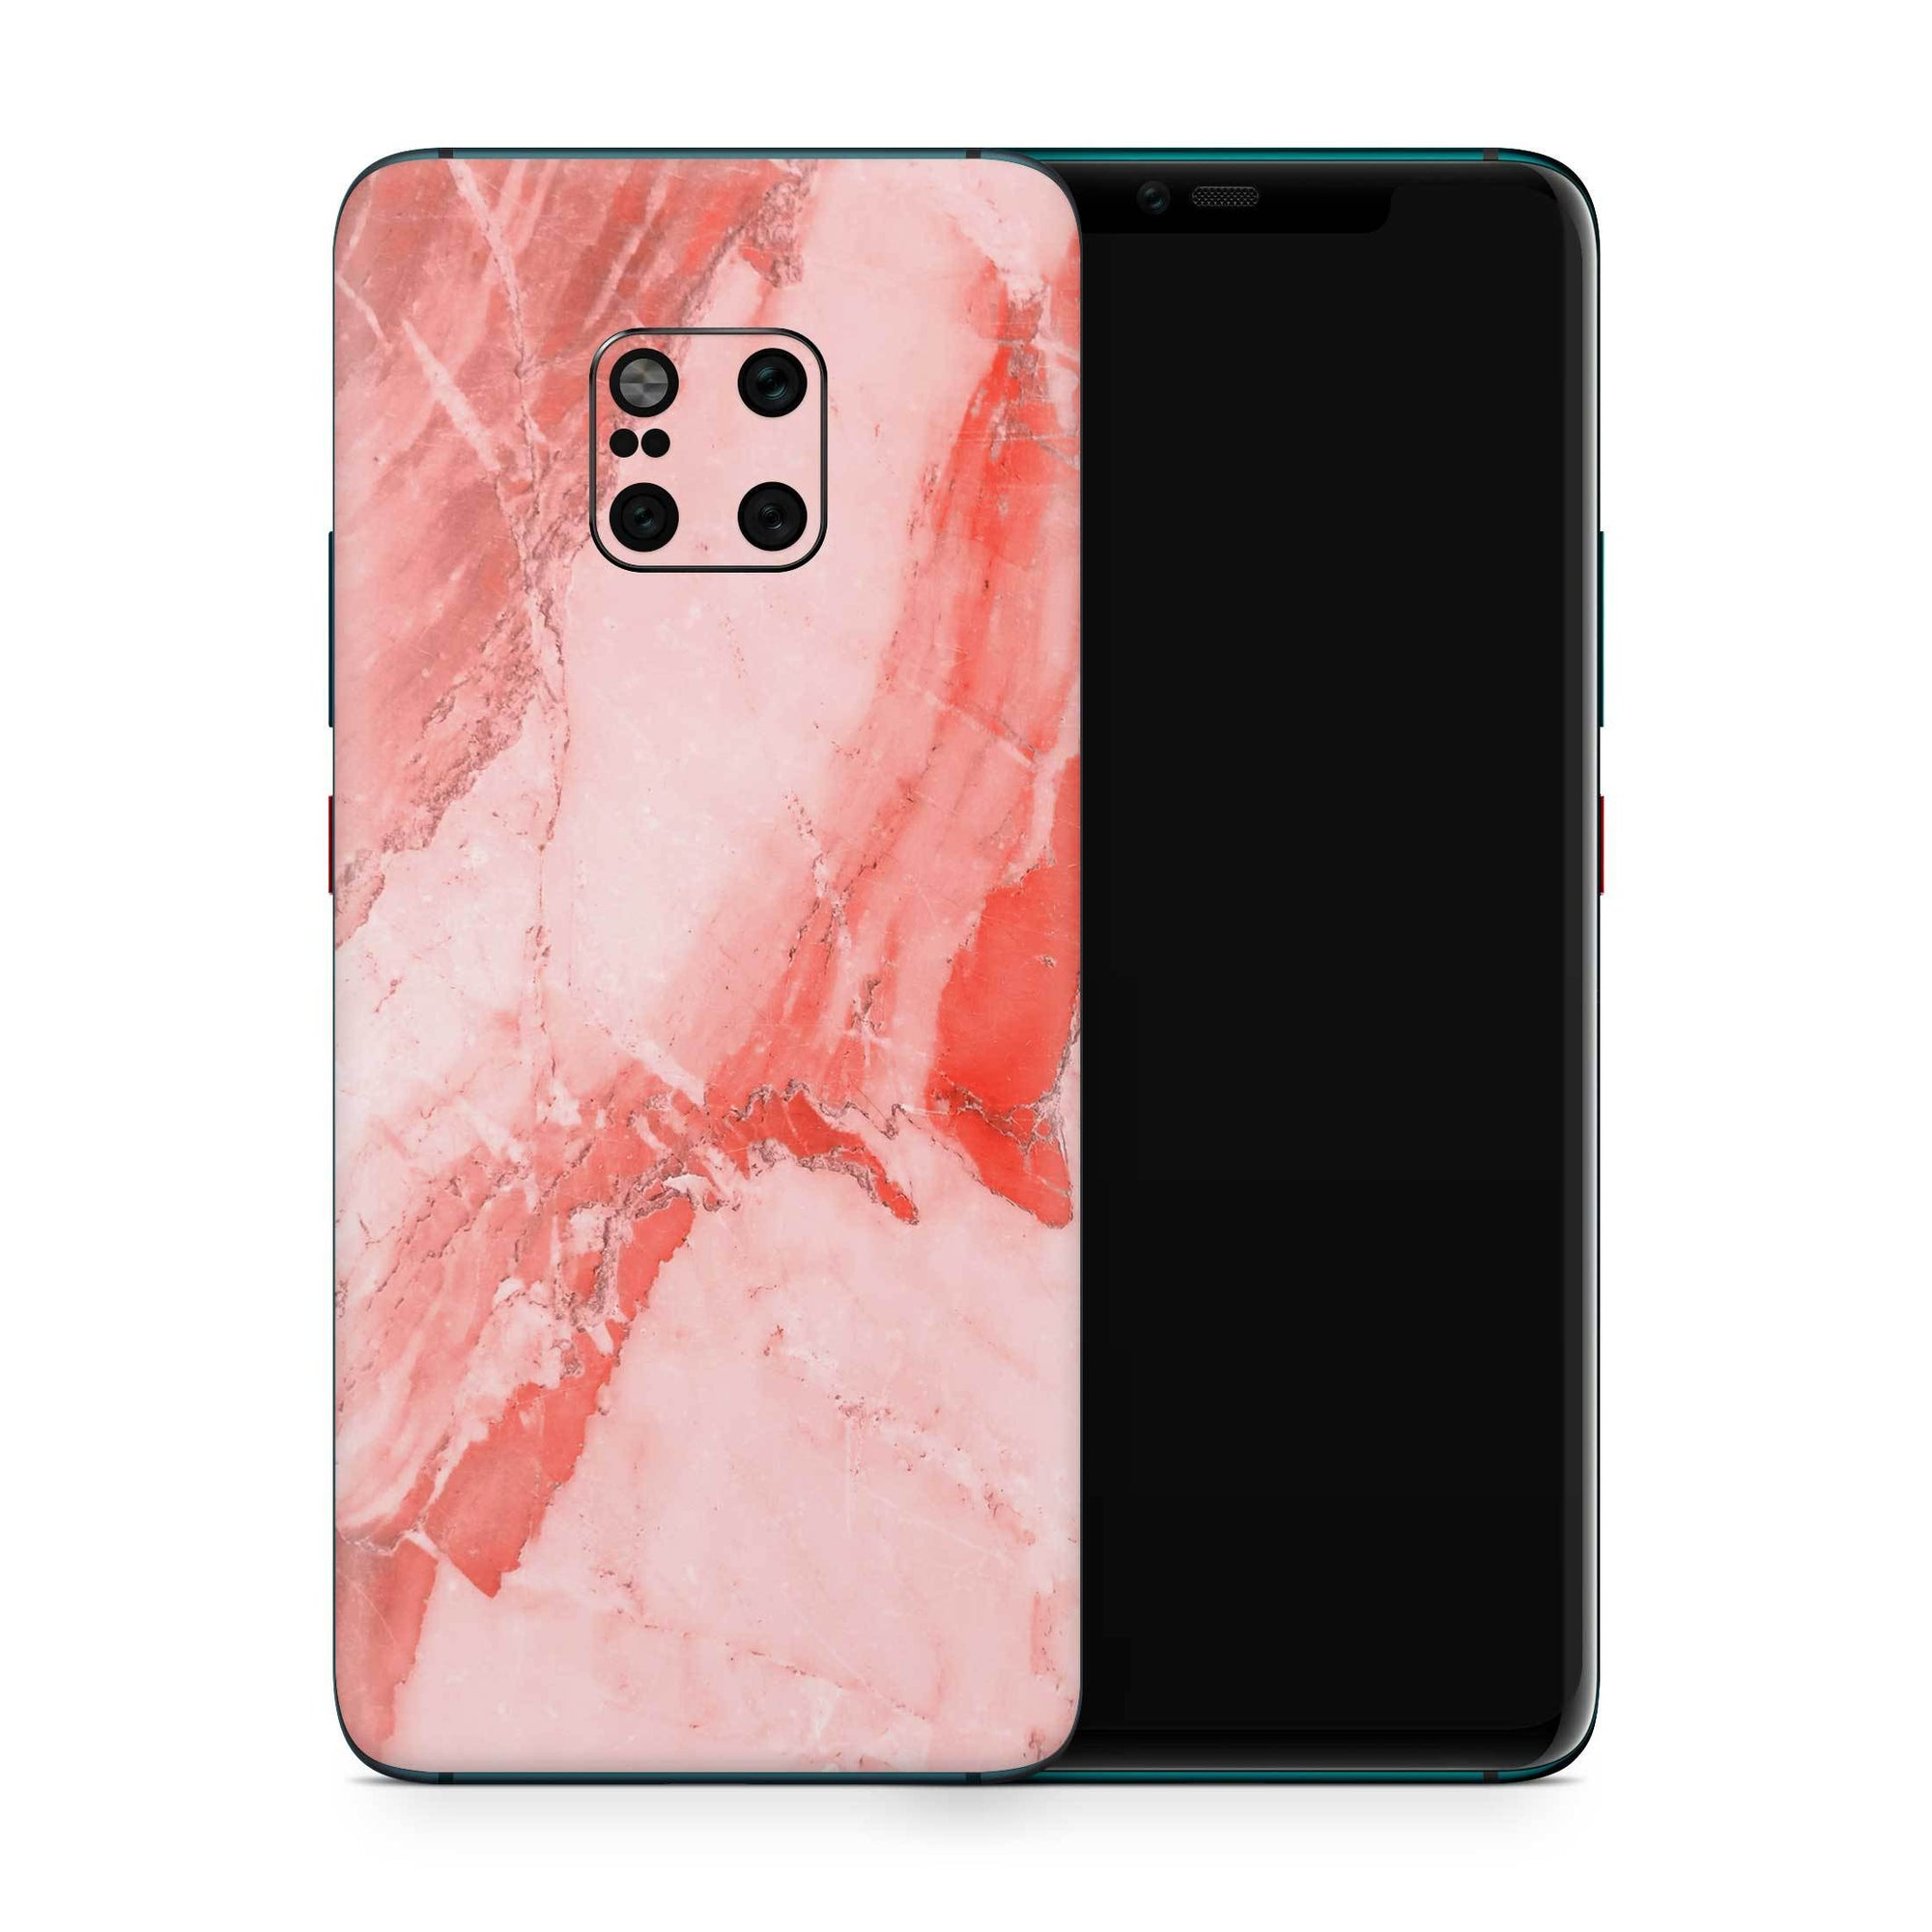 Coral Marble Skin Huawei Mate 20 Pro